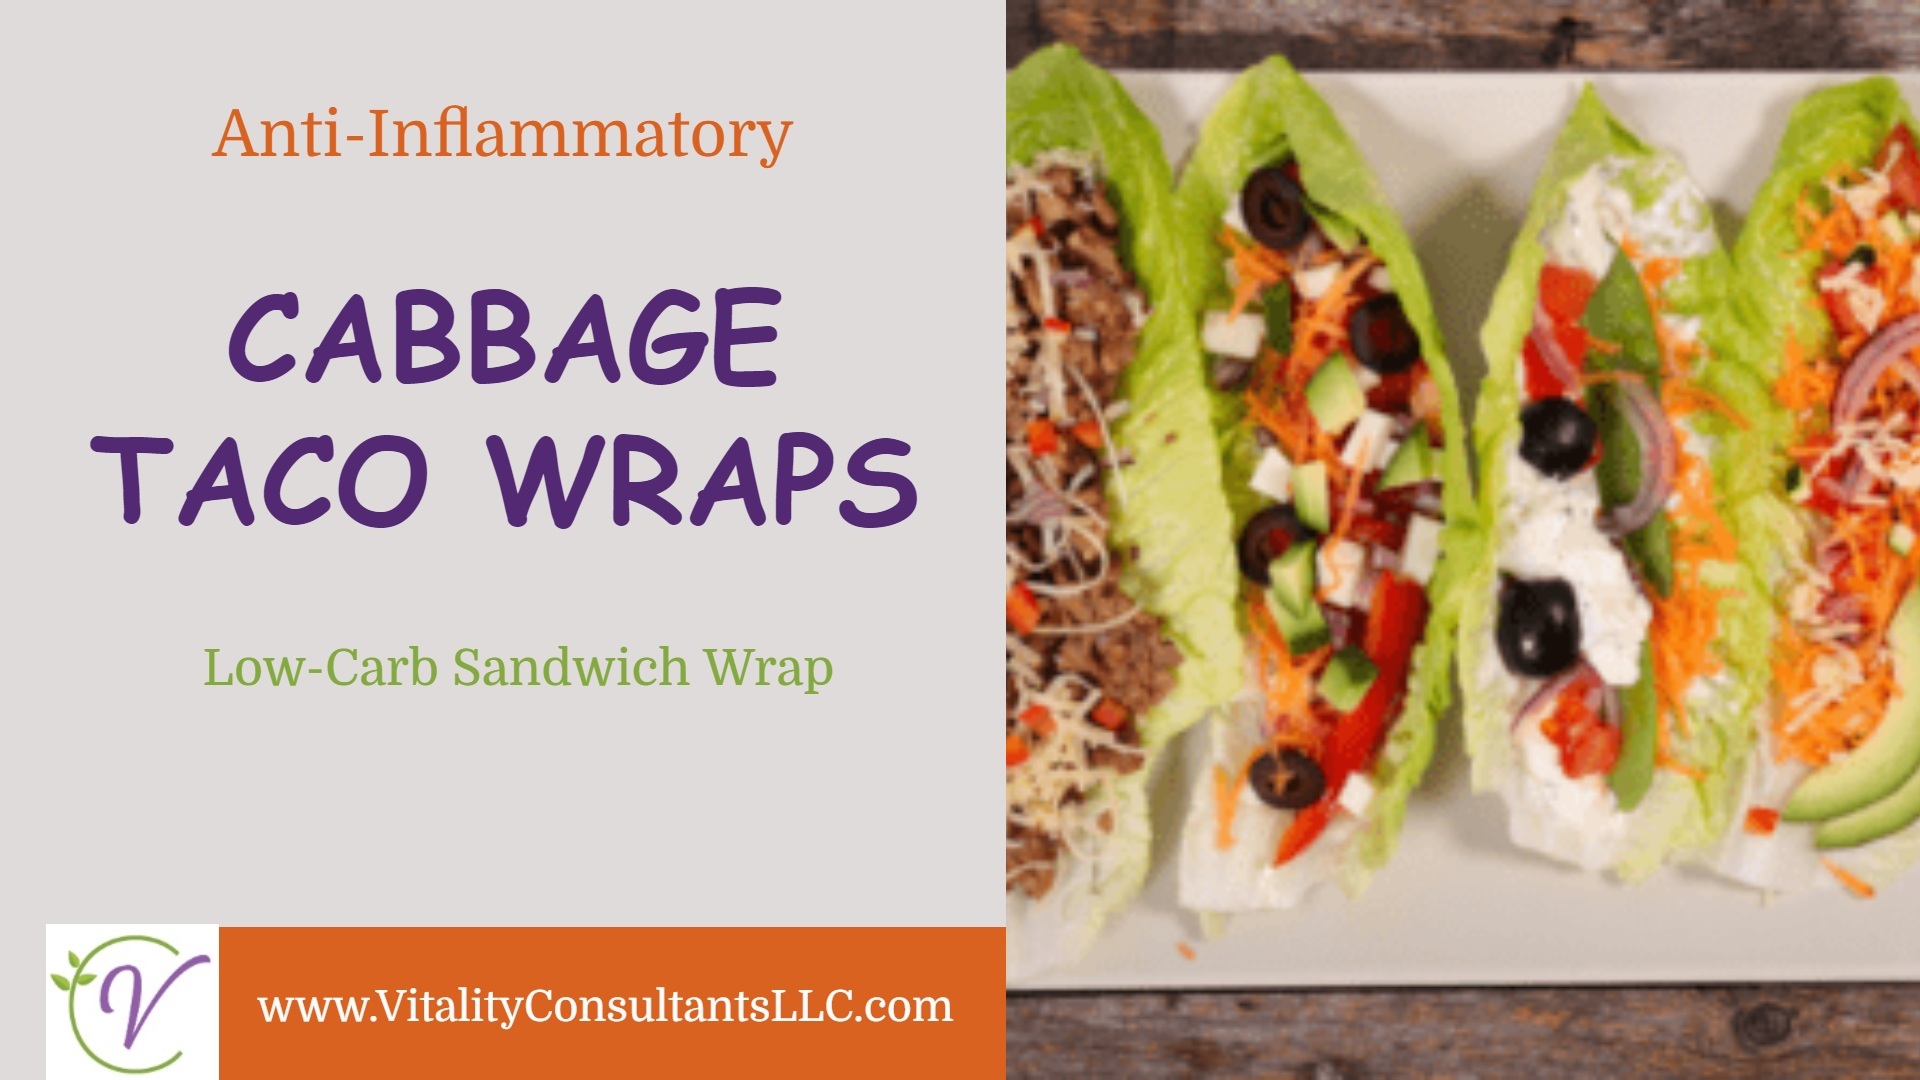 Cabbage Taco Wraps